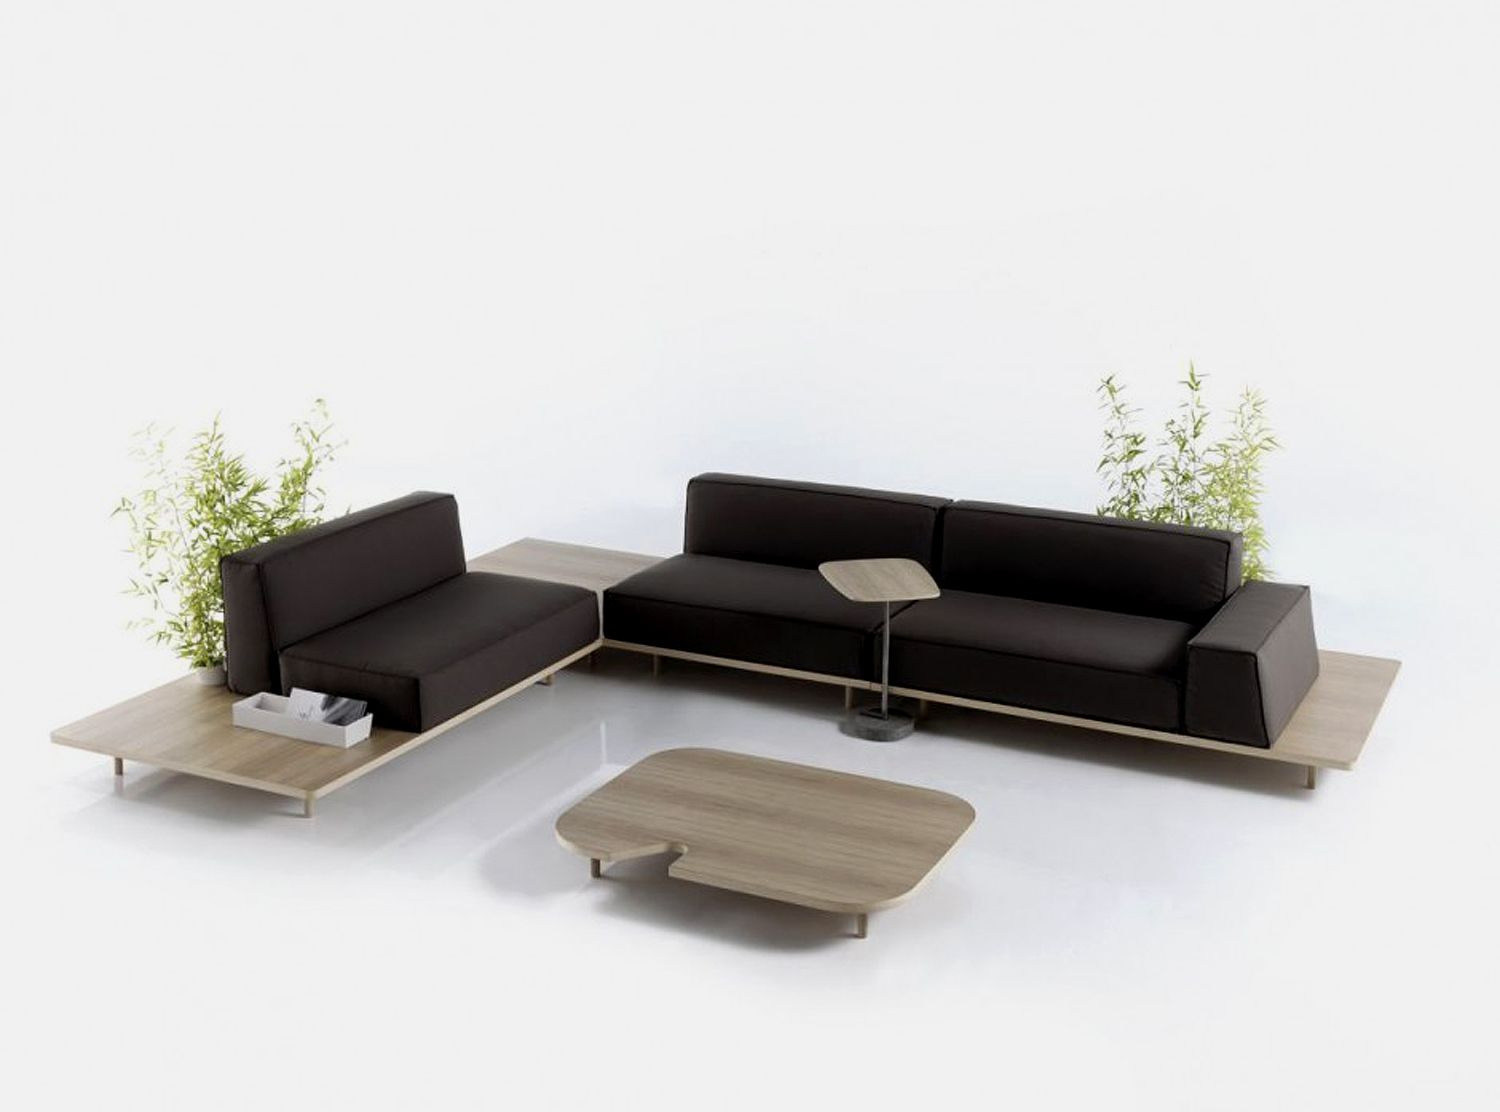 contemporary furniture design ideas. contemporary furniture designs ideas design